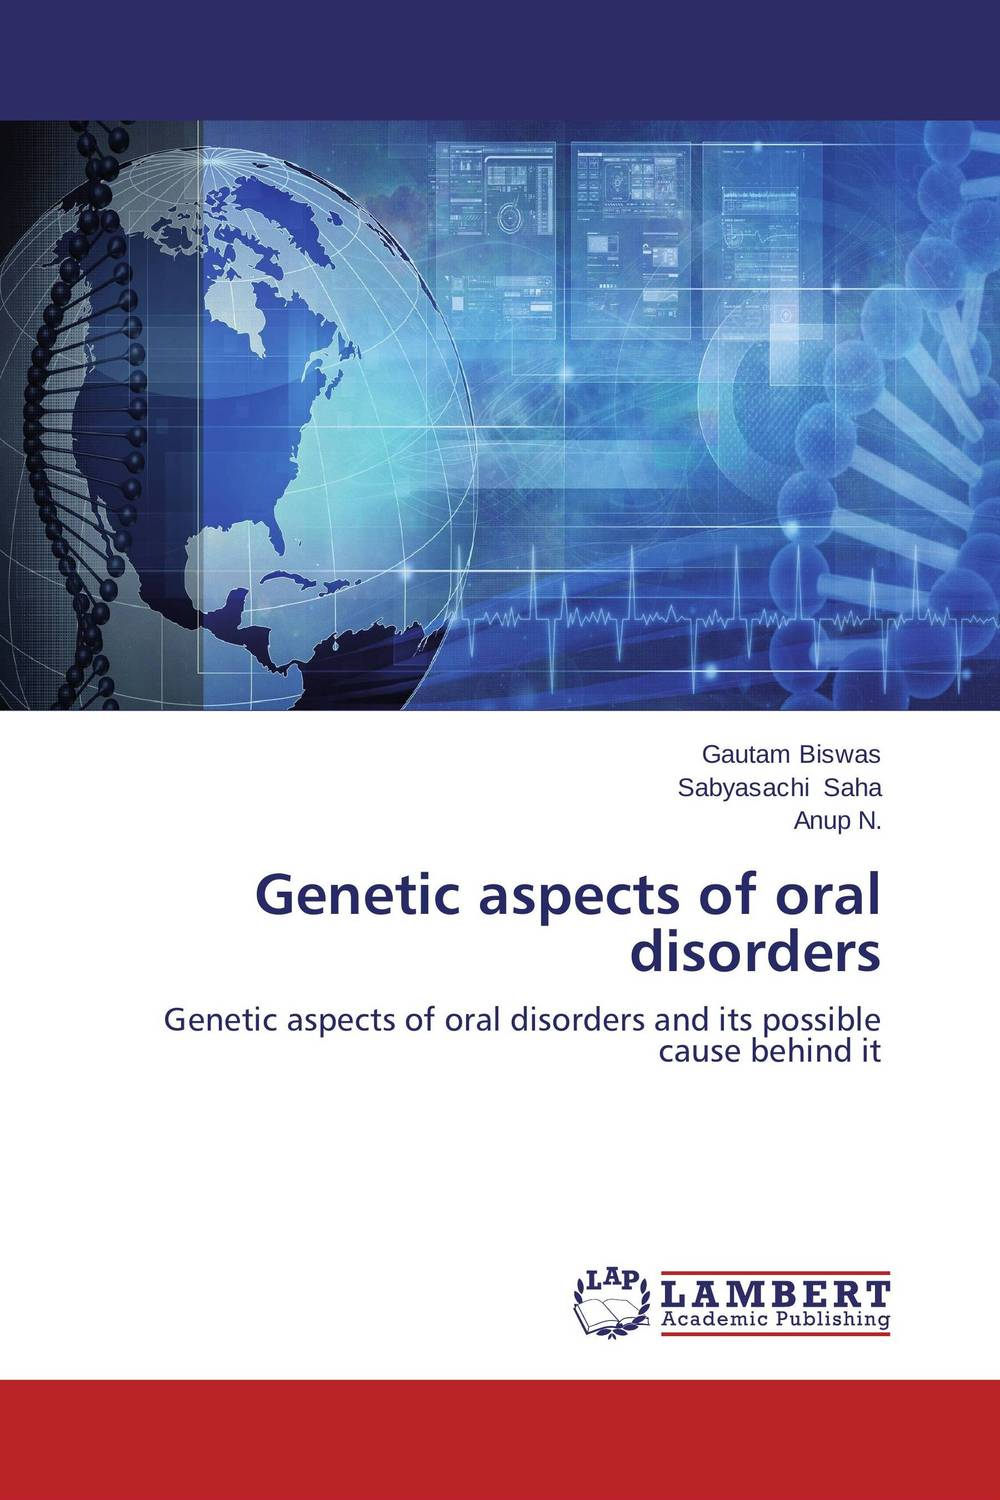 Genetic aspects of oral disorders rare genetic disorders in iraq